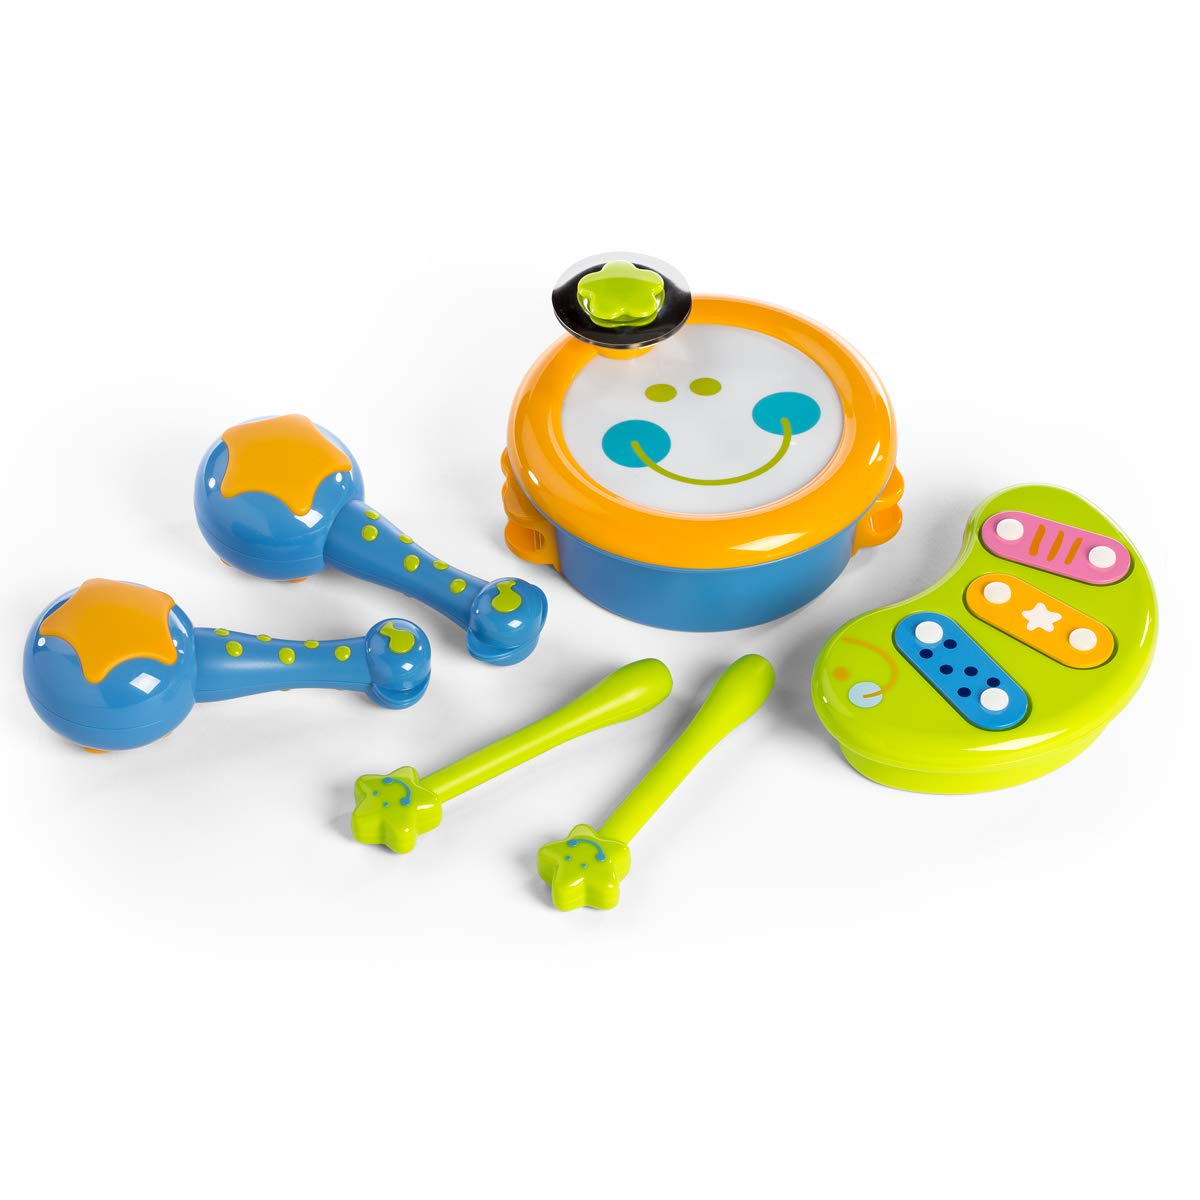 ISEE Baby Toys 6 to 12 Months | Musical Toys for Toddlers 1-3 | Infant Toys 12-18 Months | Learning Toys for 2 Year olds | Baby Musical Toys | 2 Rattle Toys for 1 Year Old | Kids Toys Age 1 by ISEE